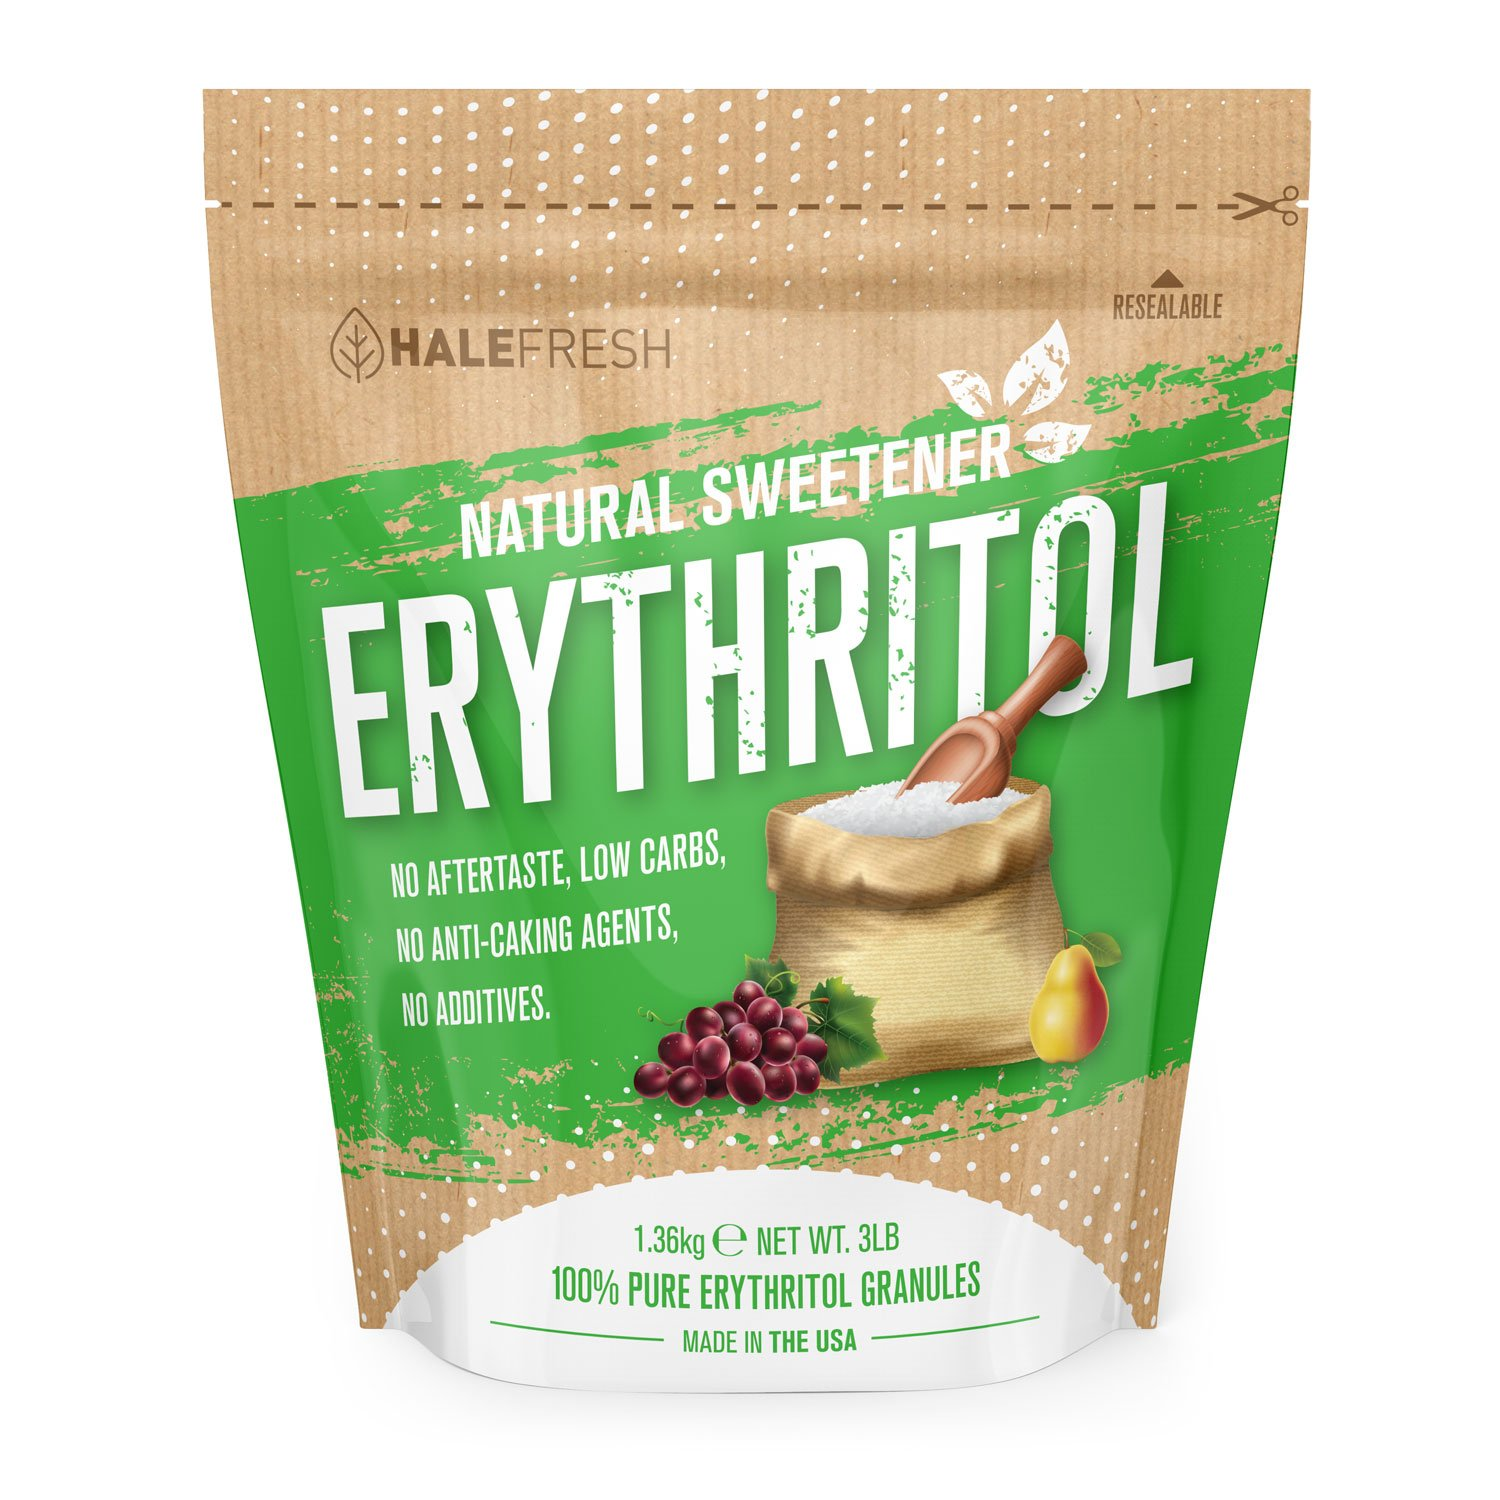 Erythritol Sweetener Natural Sugar Substitute 3lb - Granulated Low Calorie Sweetener High Digestive Tolerance Suitable for Diabetes Keto and Paleo - Perfect Baking Substitute Non GMO